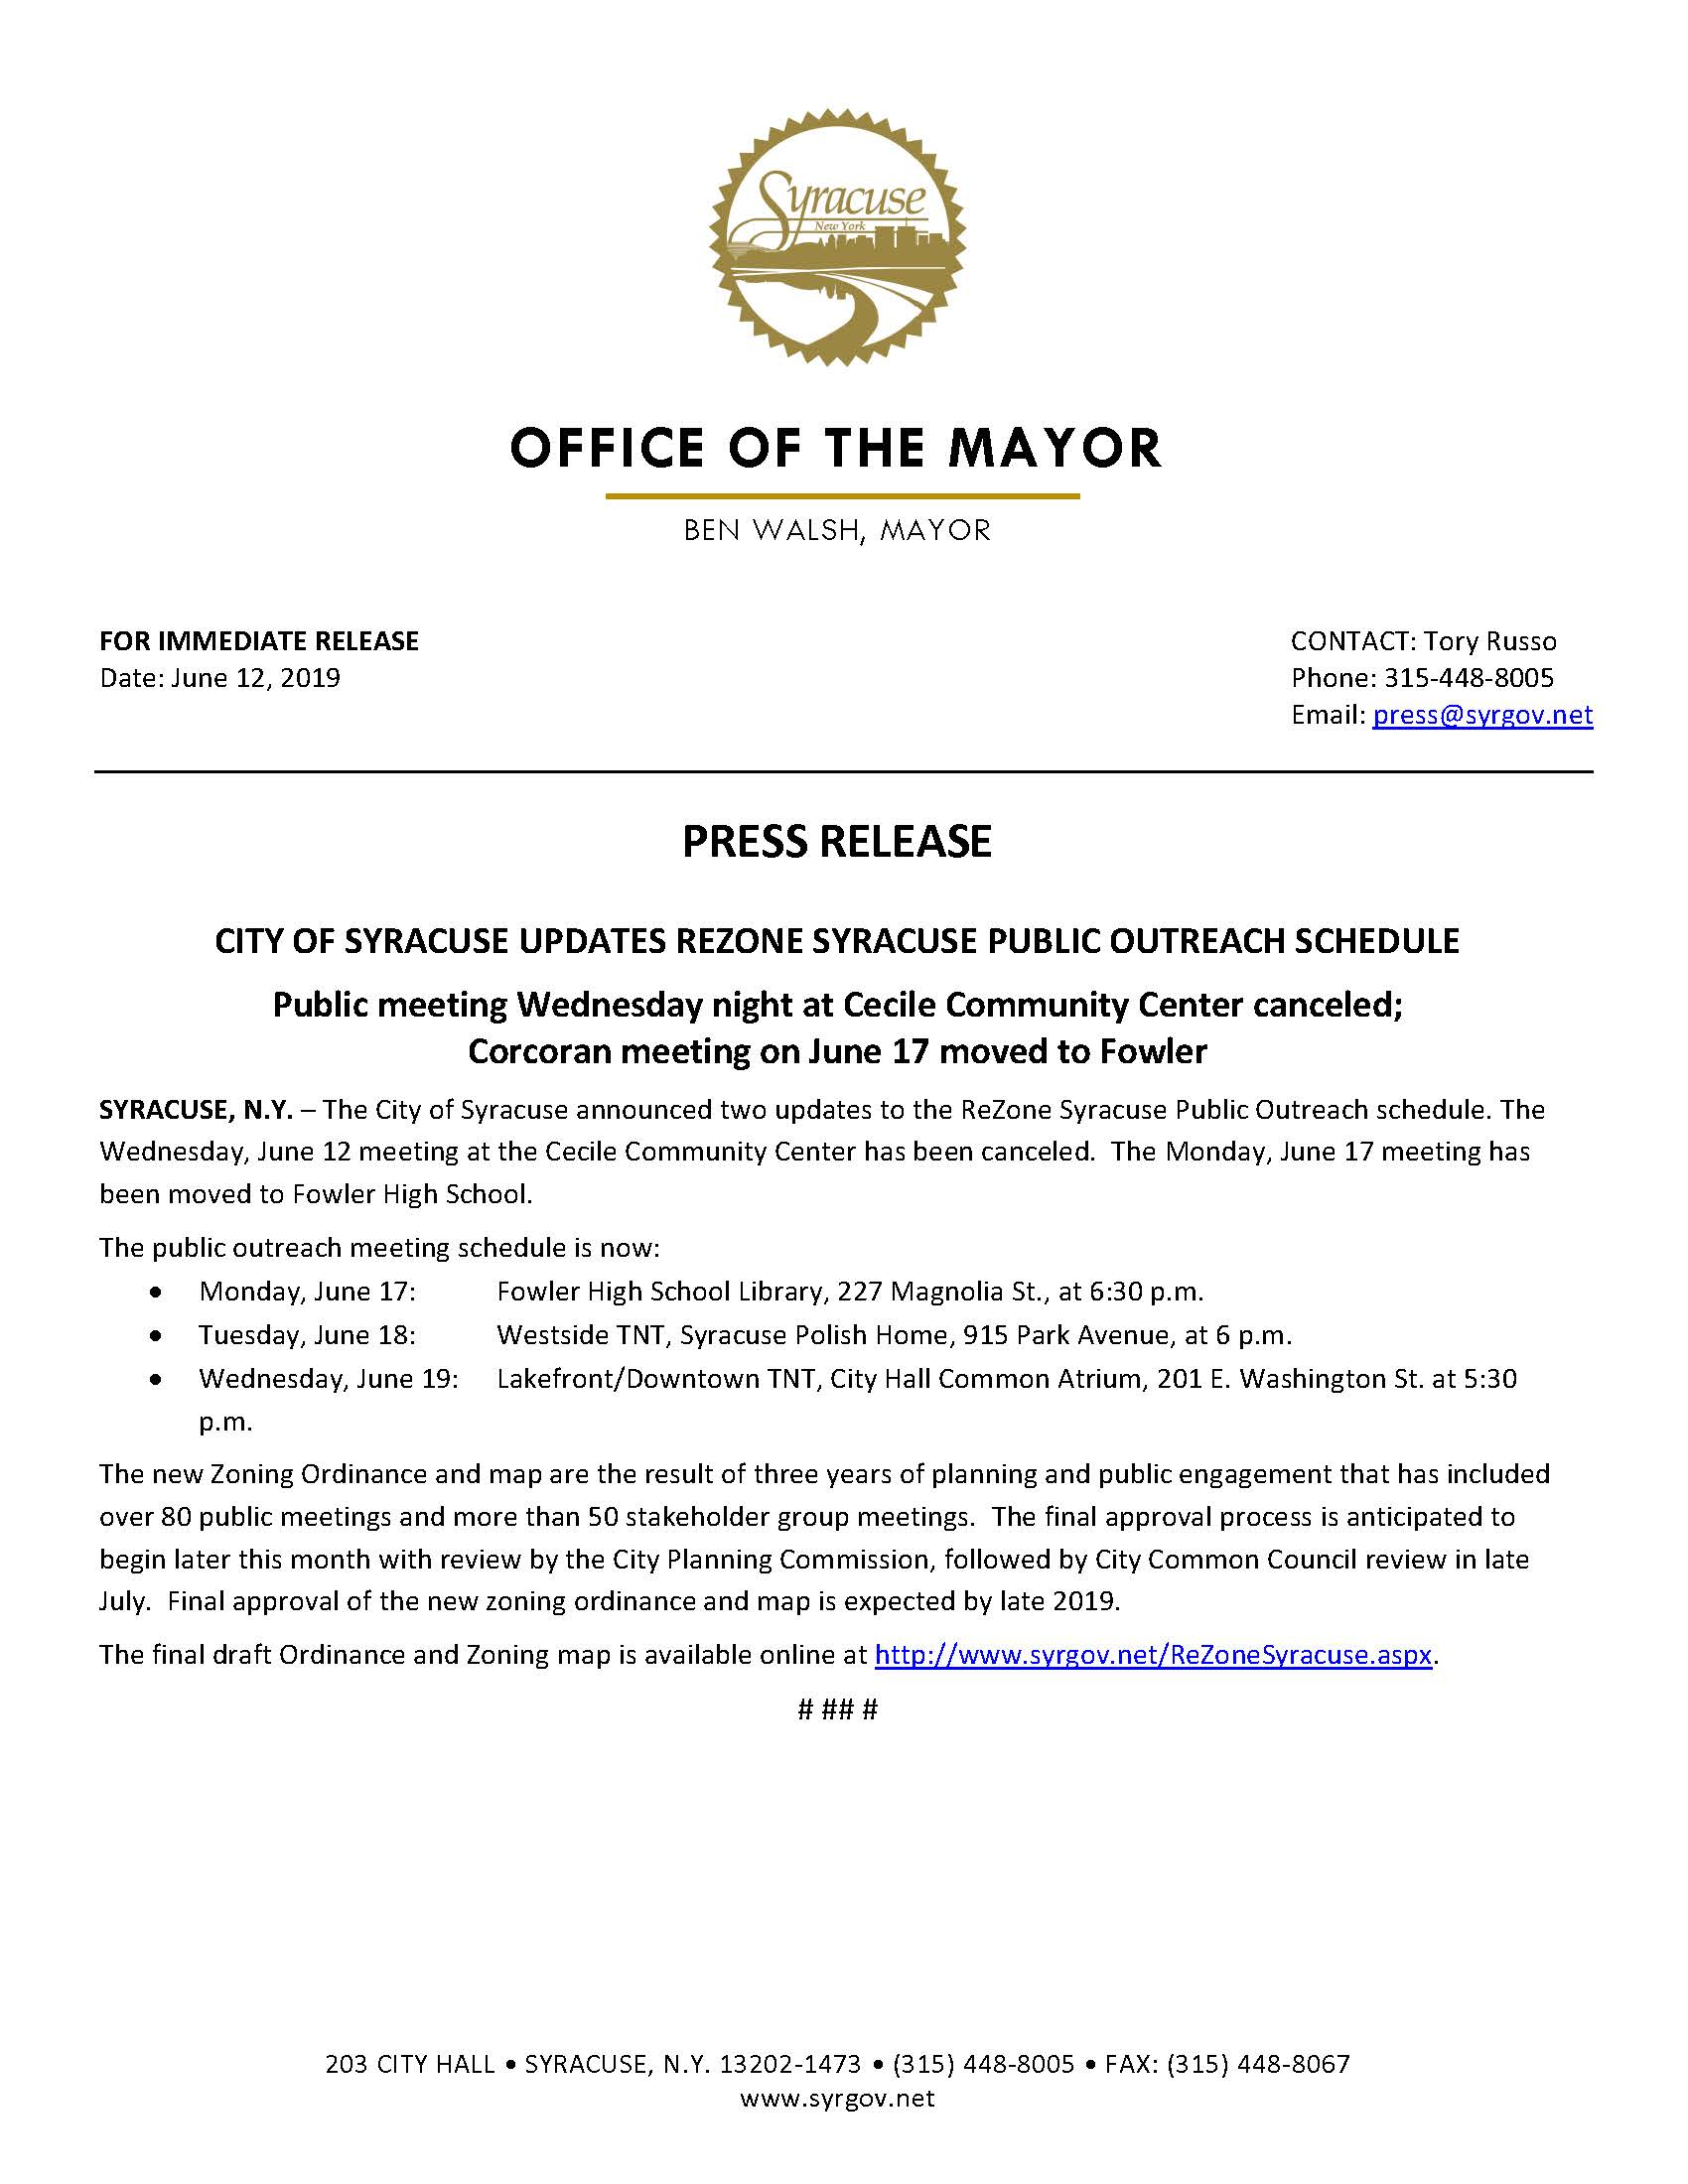 2019 06 12 PRESS RELEASE City of Syracuse Updates ReZone Meeting Schedule.jpg